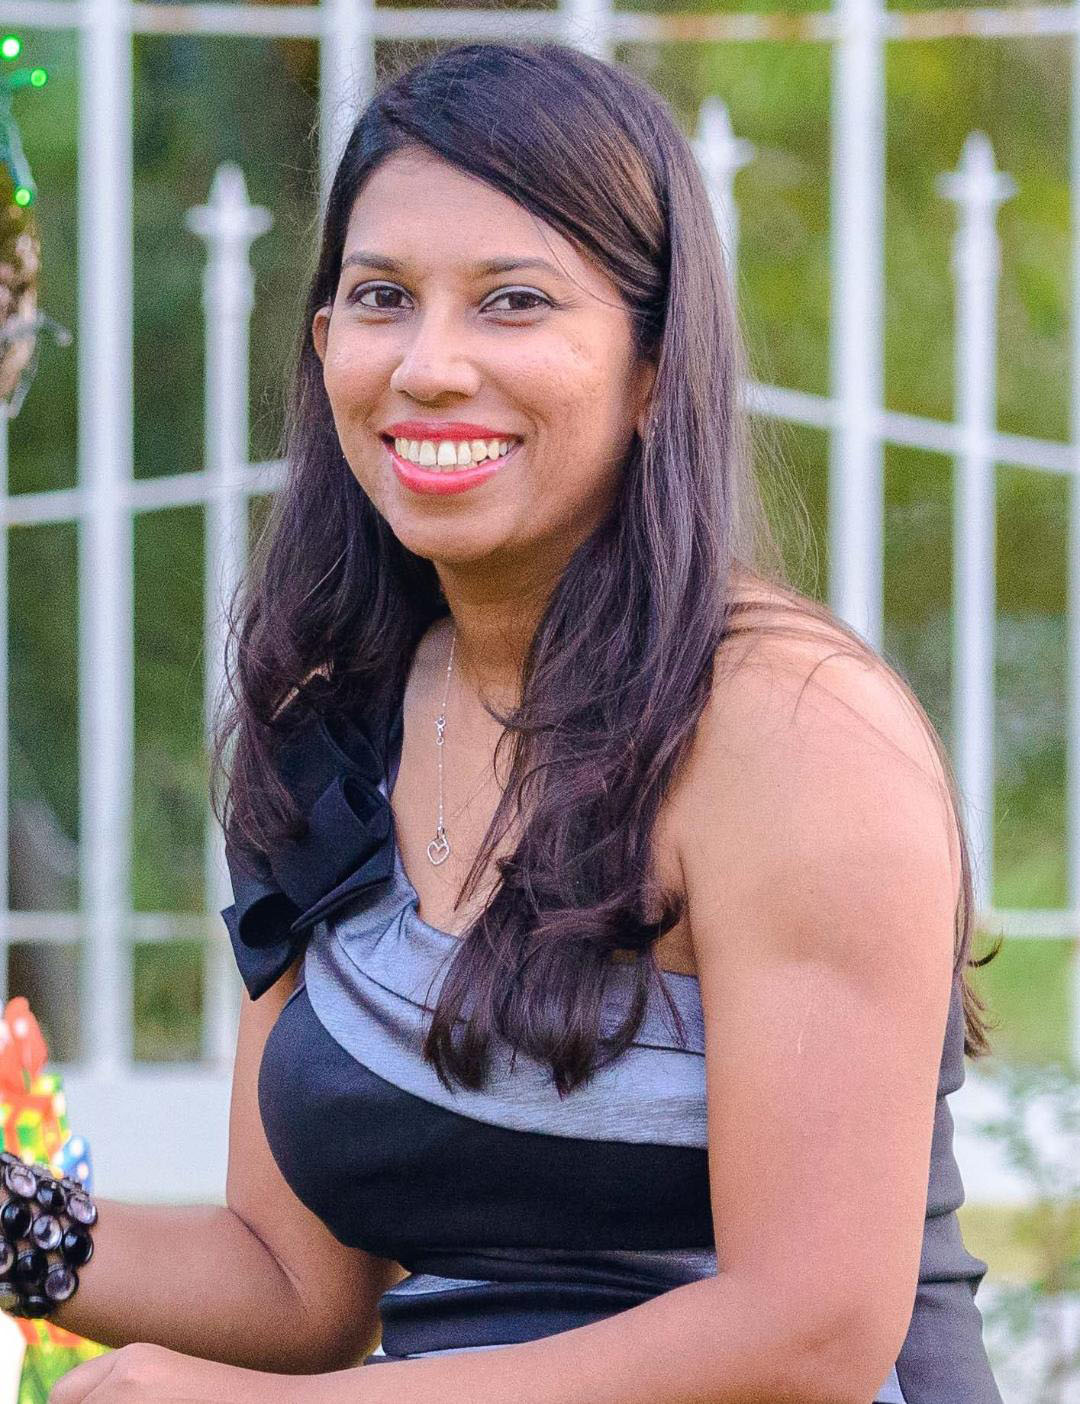 Persaud-Mc Kinnon to chair World Archery America's Gender Equity Committee